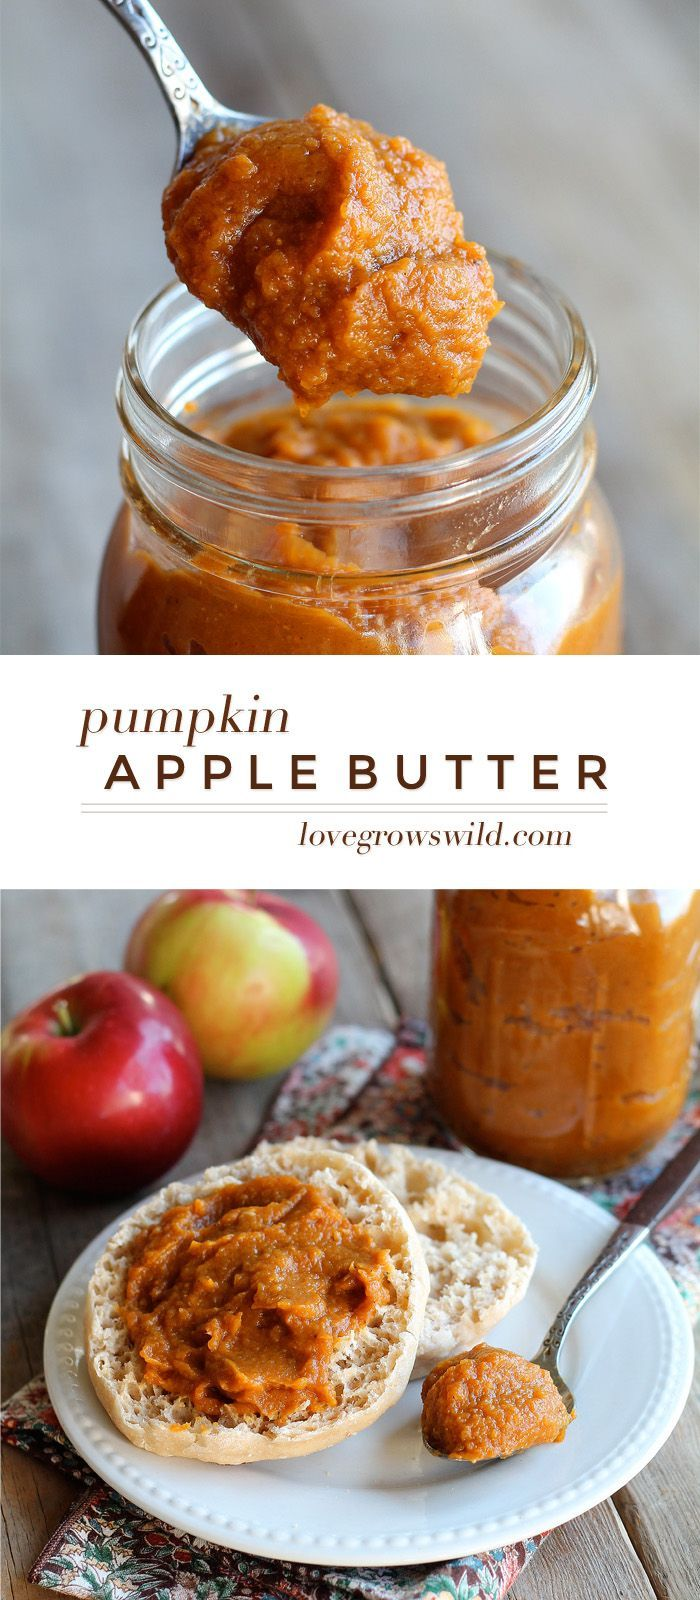 ~~Pumpkin Apple Butter | Homemade stovetop recipe full of pumpkin pie flavor! Spread it on toast, pancakes,  muffins or stir into some warm oatmeal. Keeps in the frig for a couple of weeks in an airtight jar.  | Love Grows Wild~~